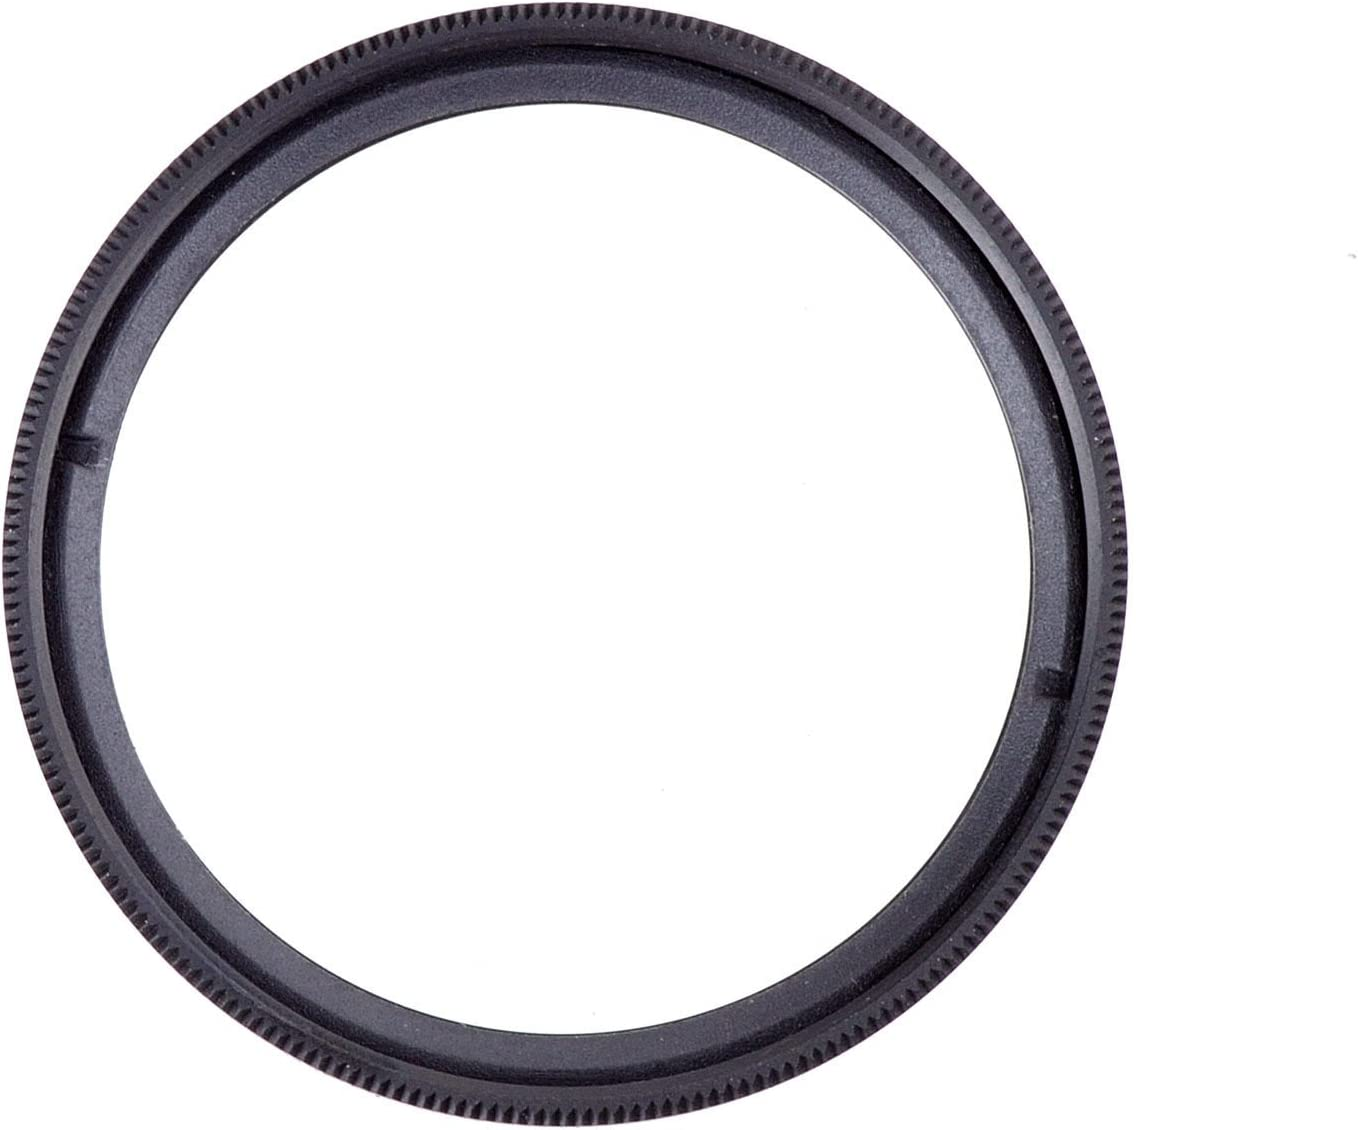 Yunchenghe 55mm Thin Multi-Coated UV Filter Protection Filter for Your Camera Lens with 55mm Filter Thread